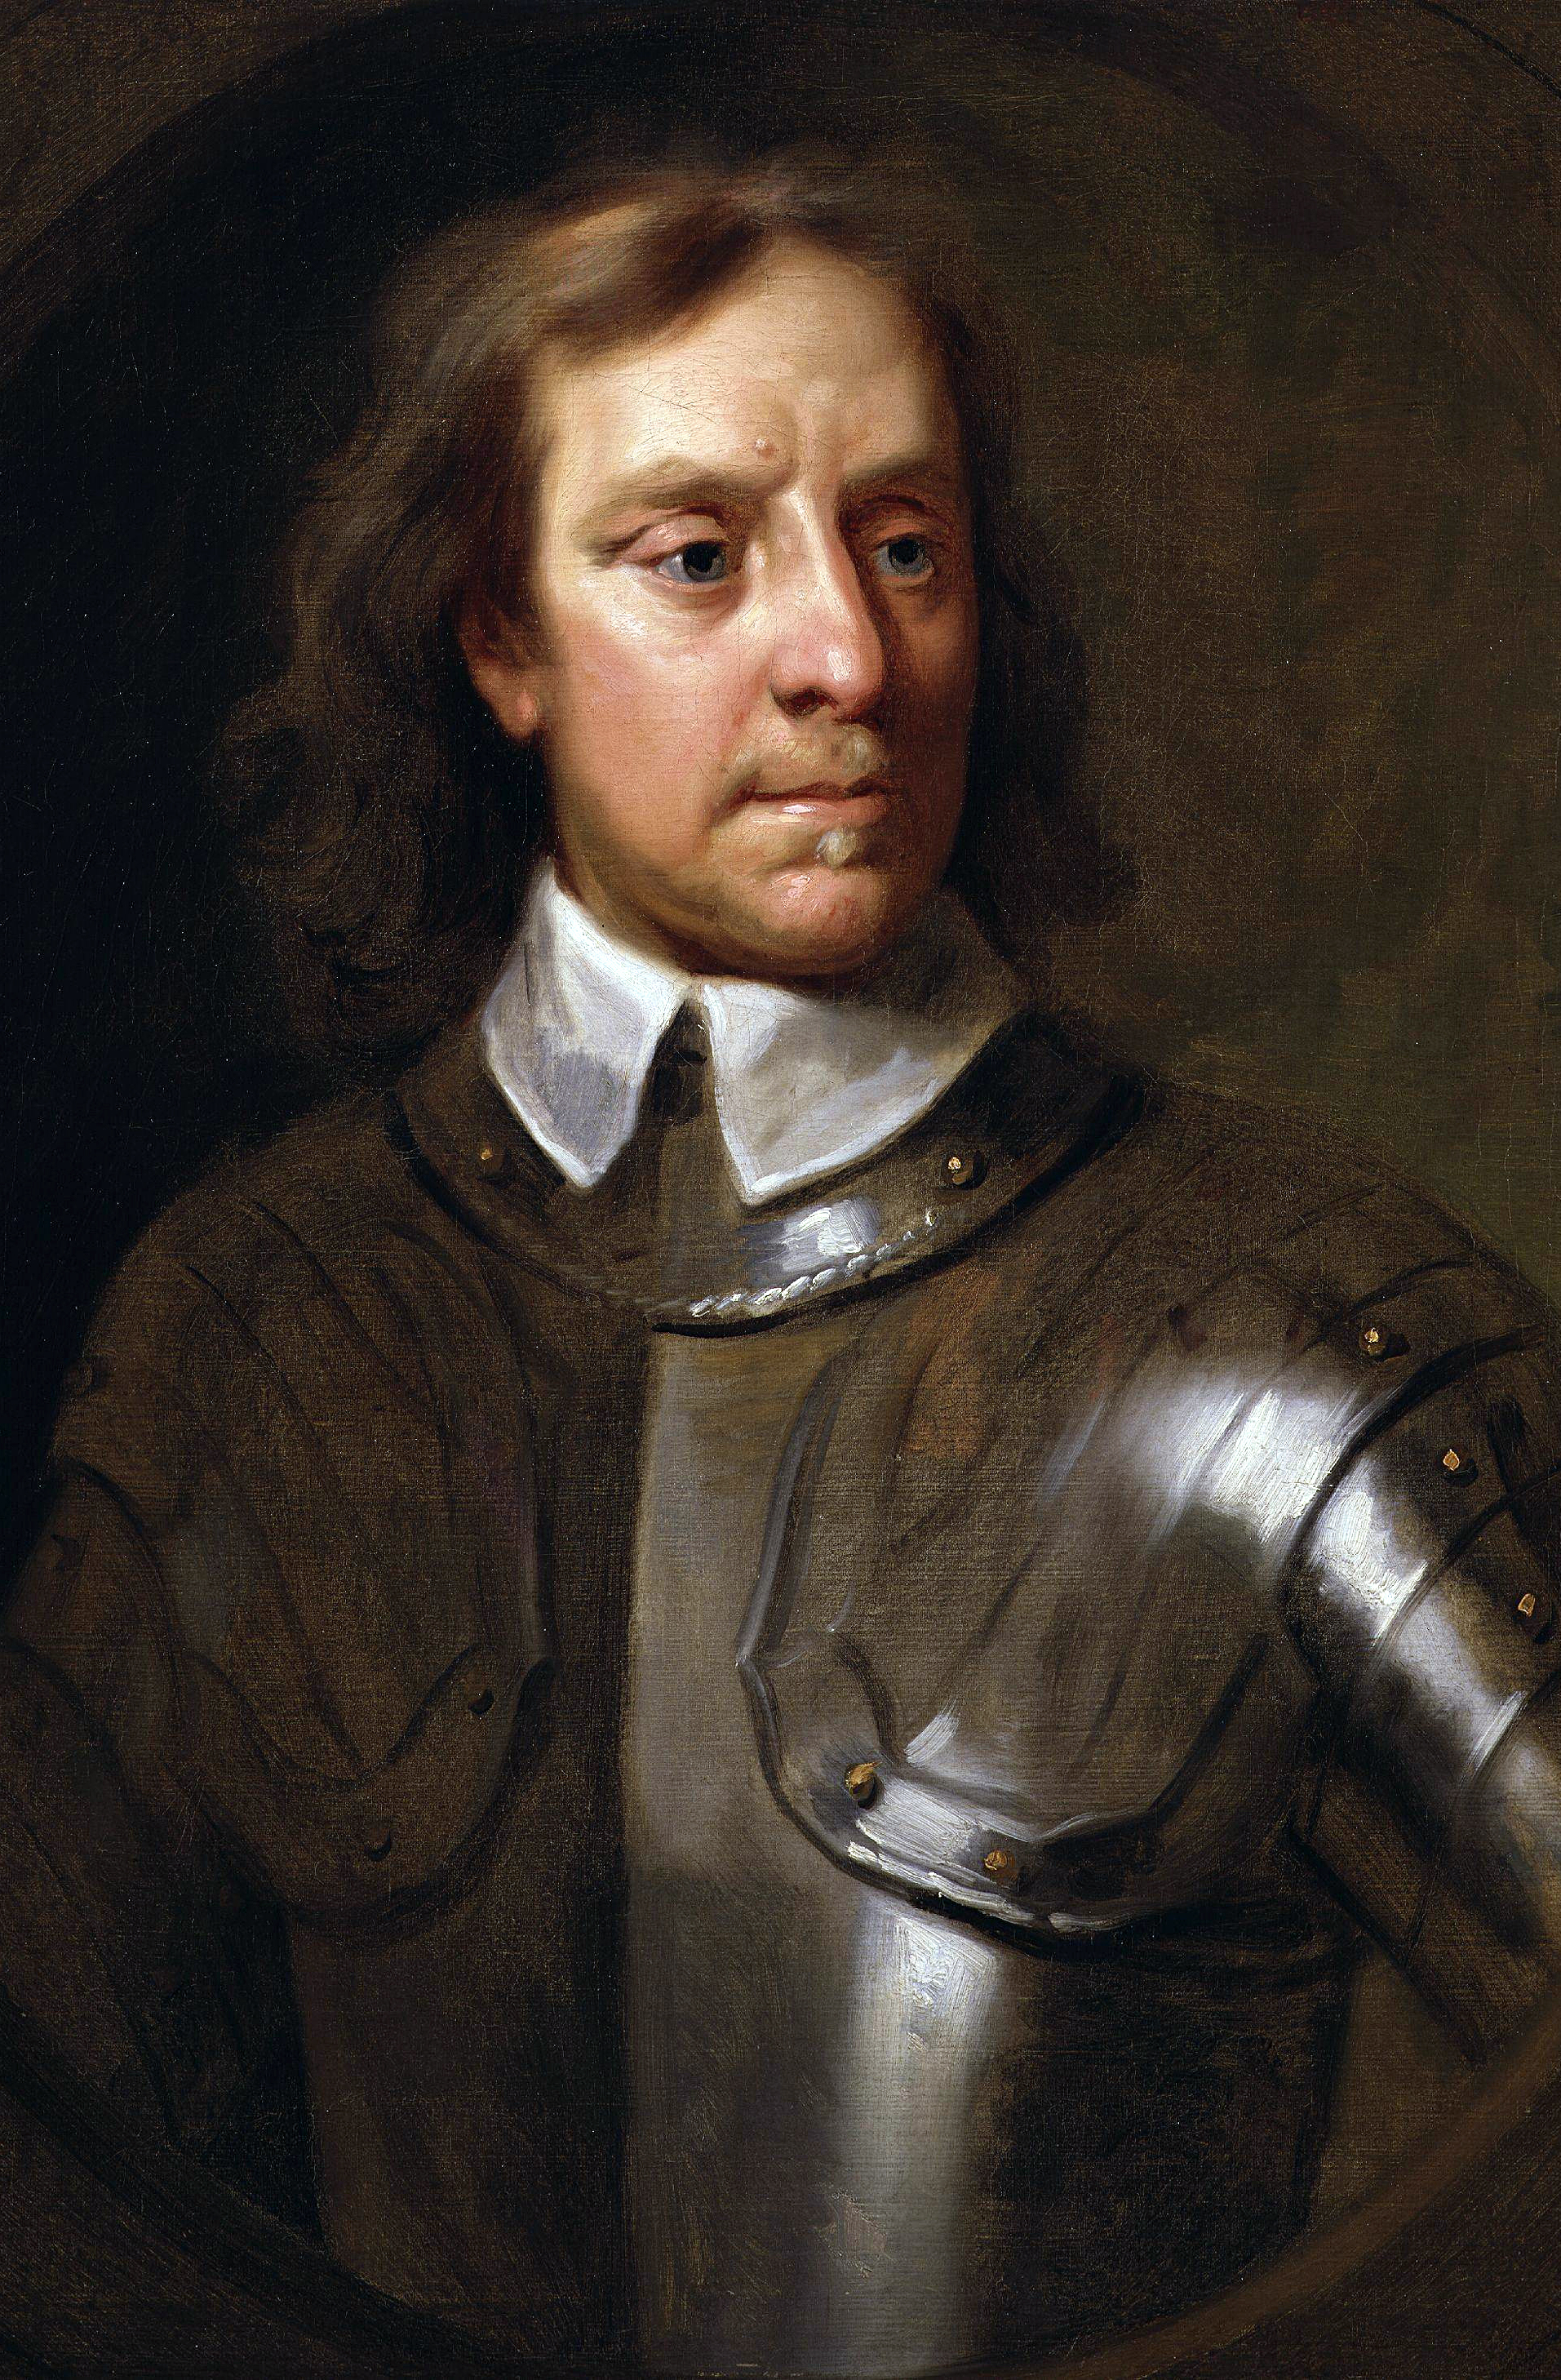 Oliver Cromwell was born on this day in 1599